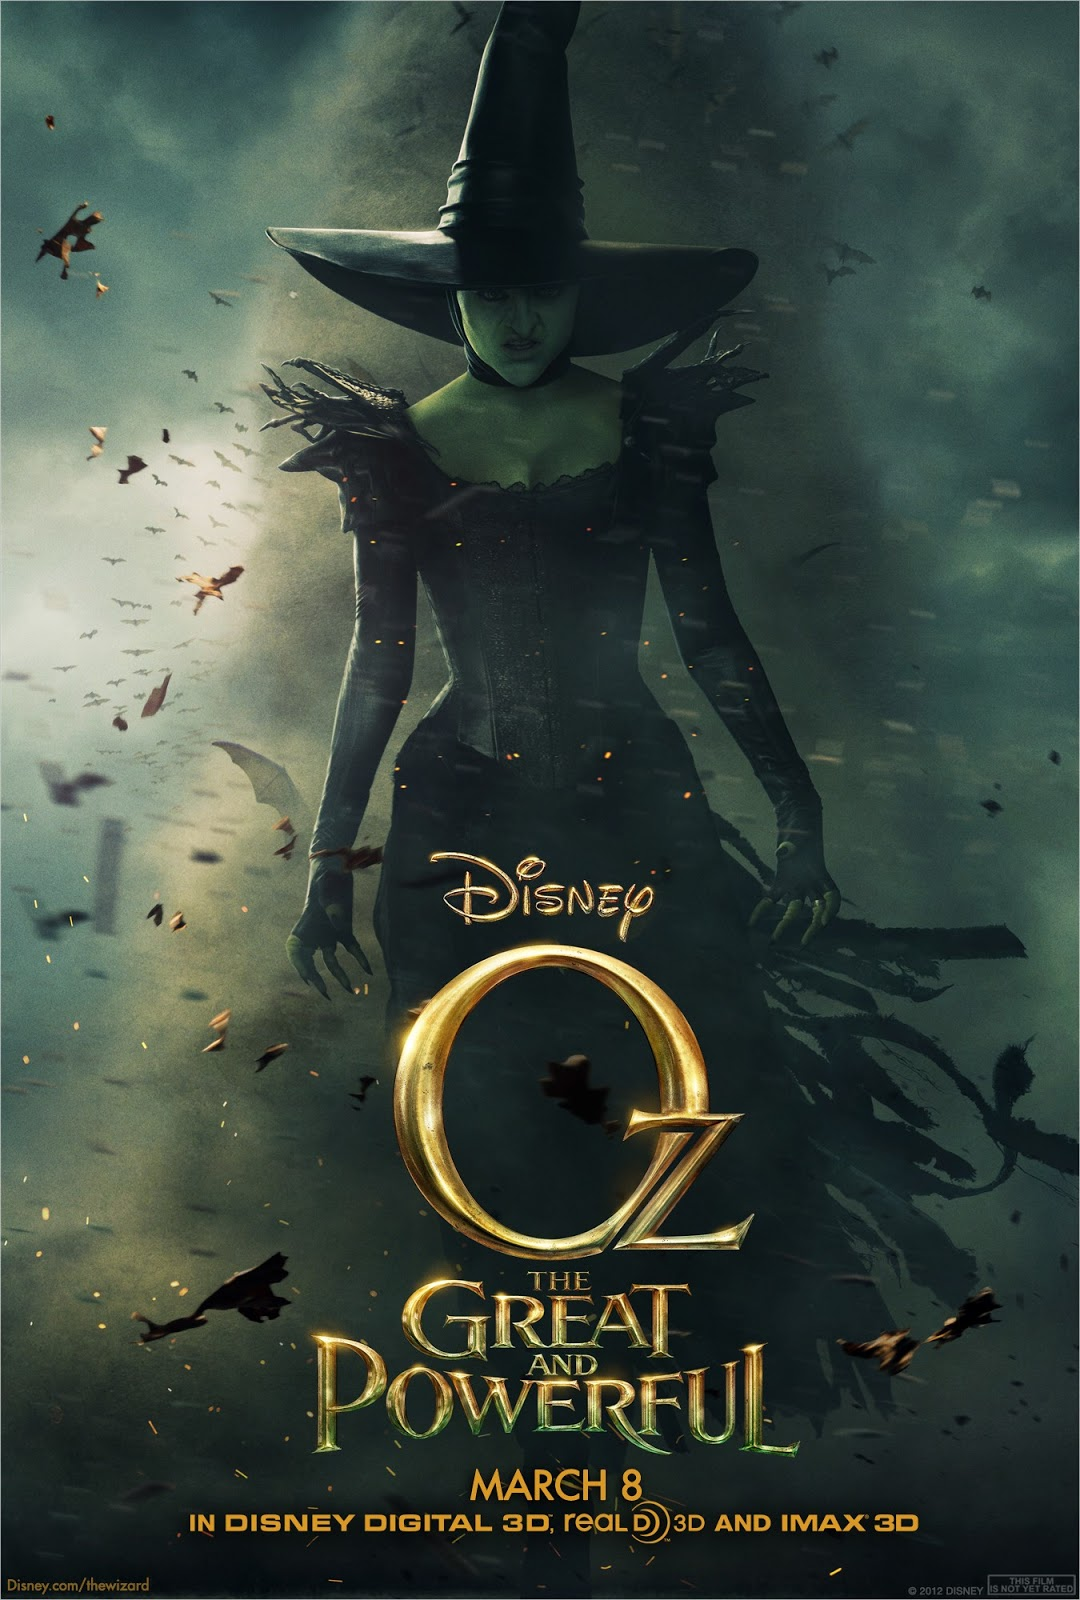 http://4.bp.blogspot.com/-ord2_NA1v0Y/UNHJGjT7eoI/AAAAAAAAQ9o/AkH_GMMF3Zs/s1600/oz_the_great_and_powerful_ver7_xxlg.jpg